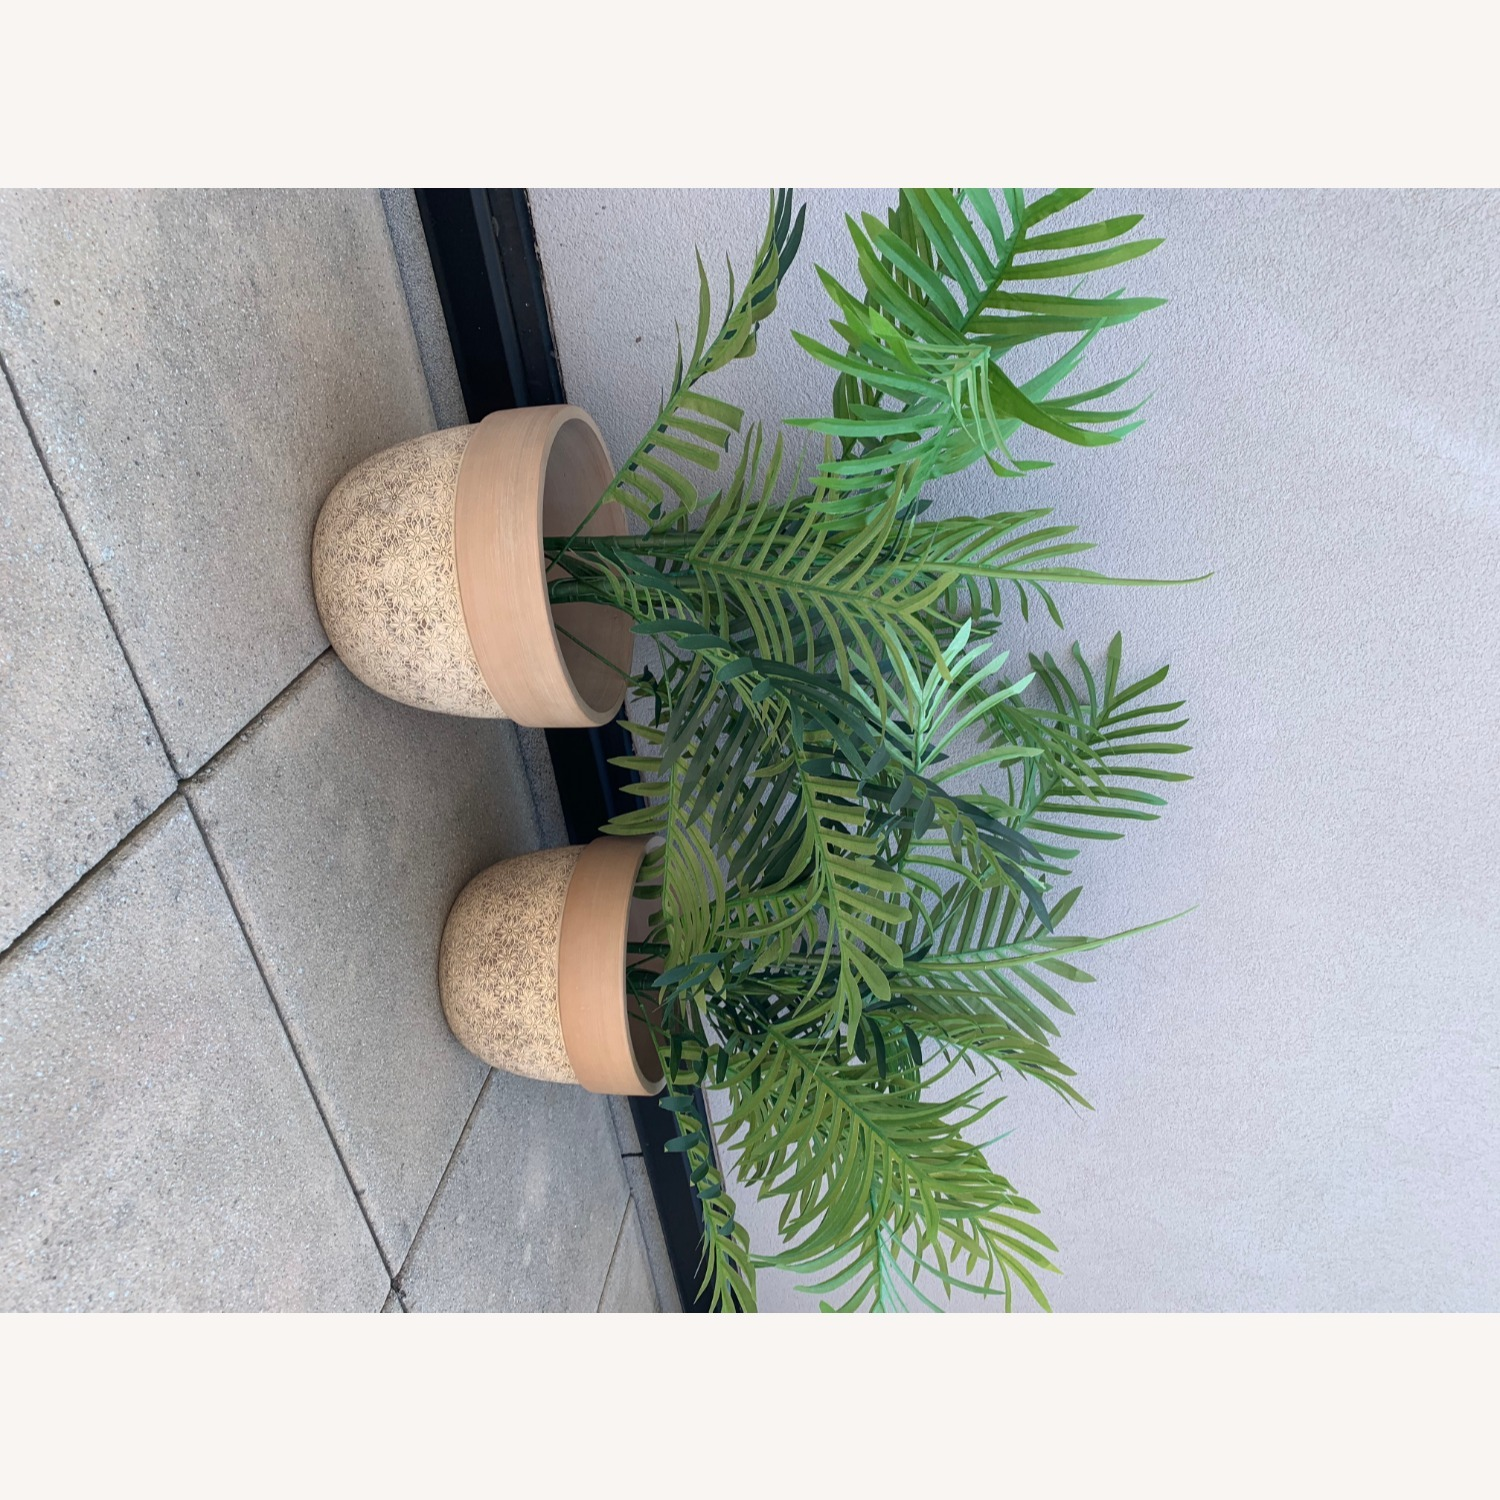 Ceramic Planters With Etched Flowers + Faux Palms - image-5